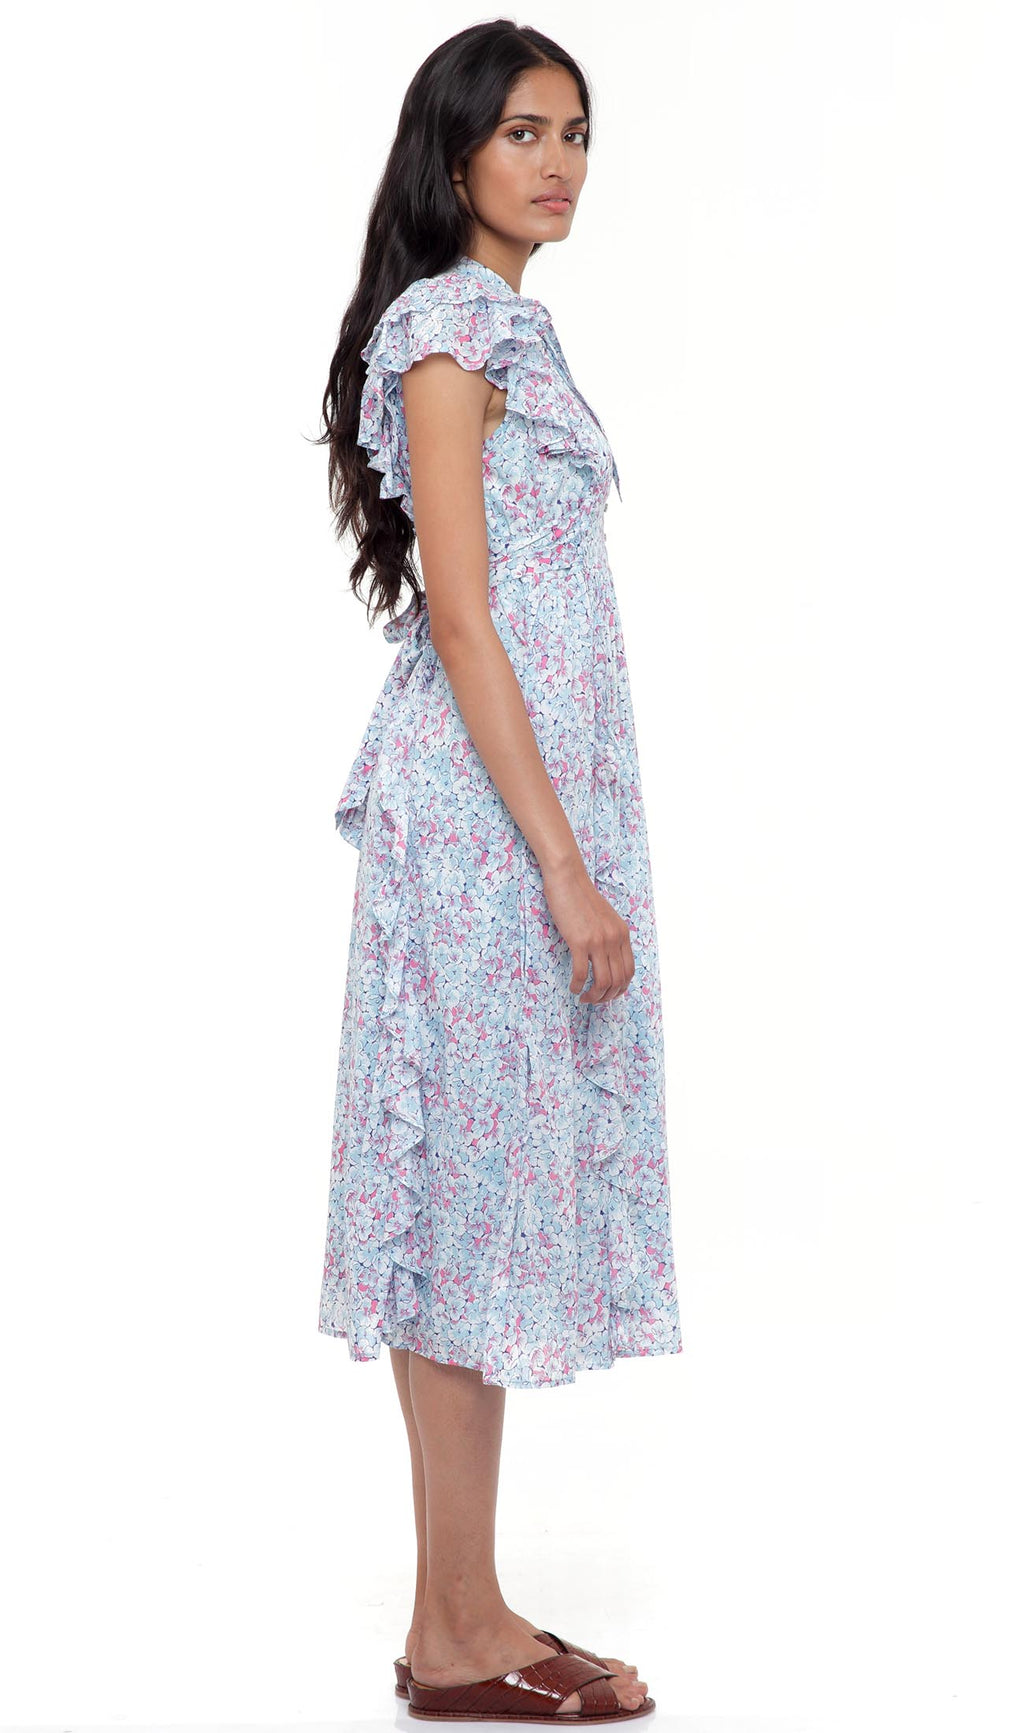 Flora Dress Clover Field White Blue - 3 LEFT IN SIZE L.